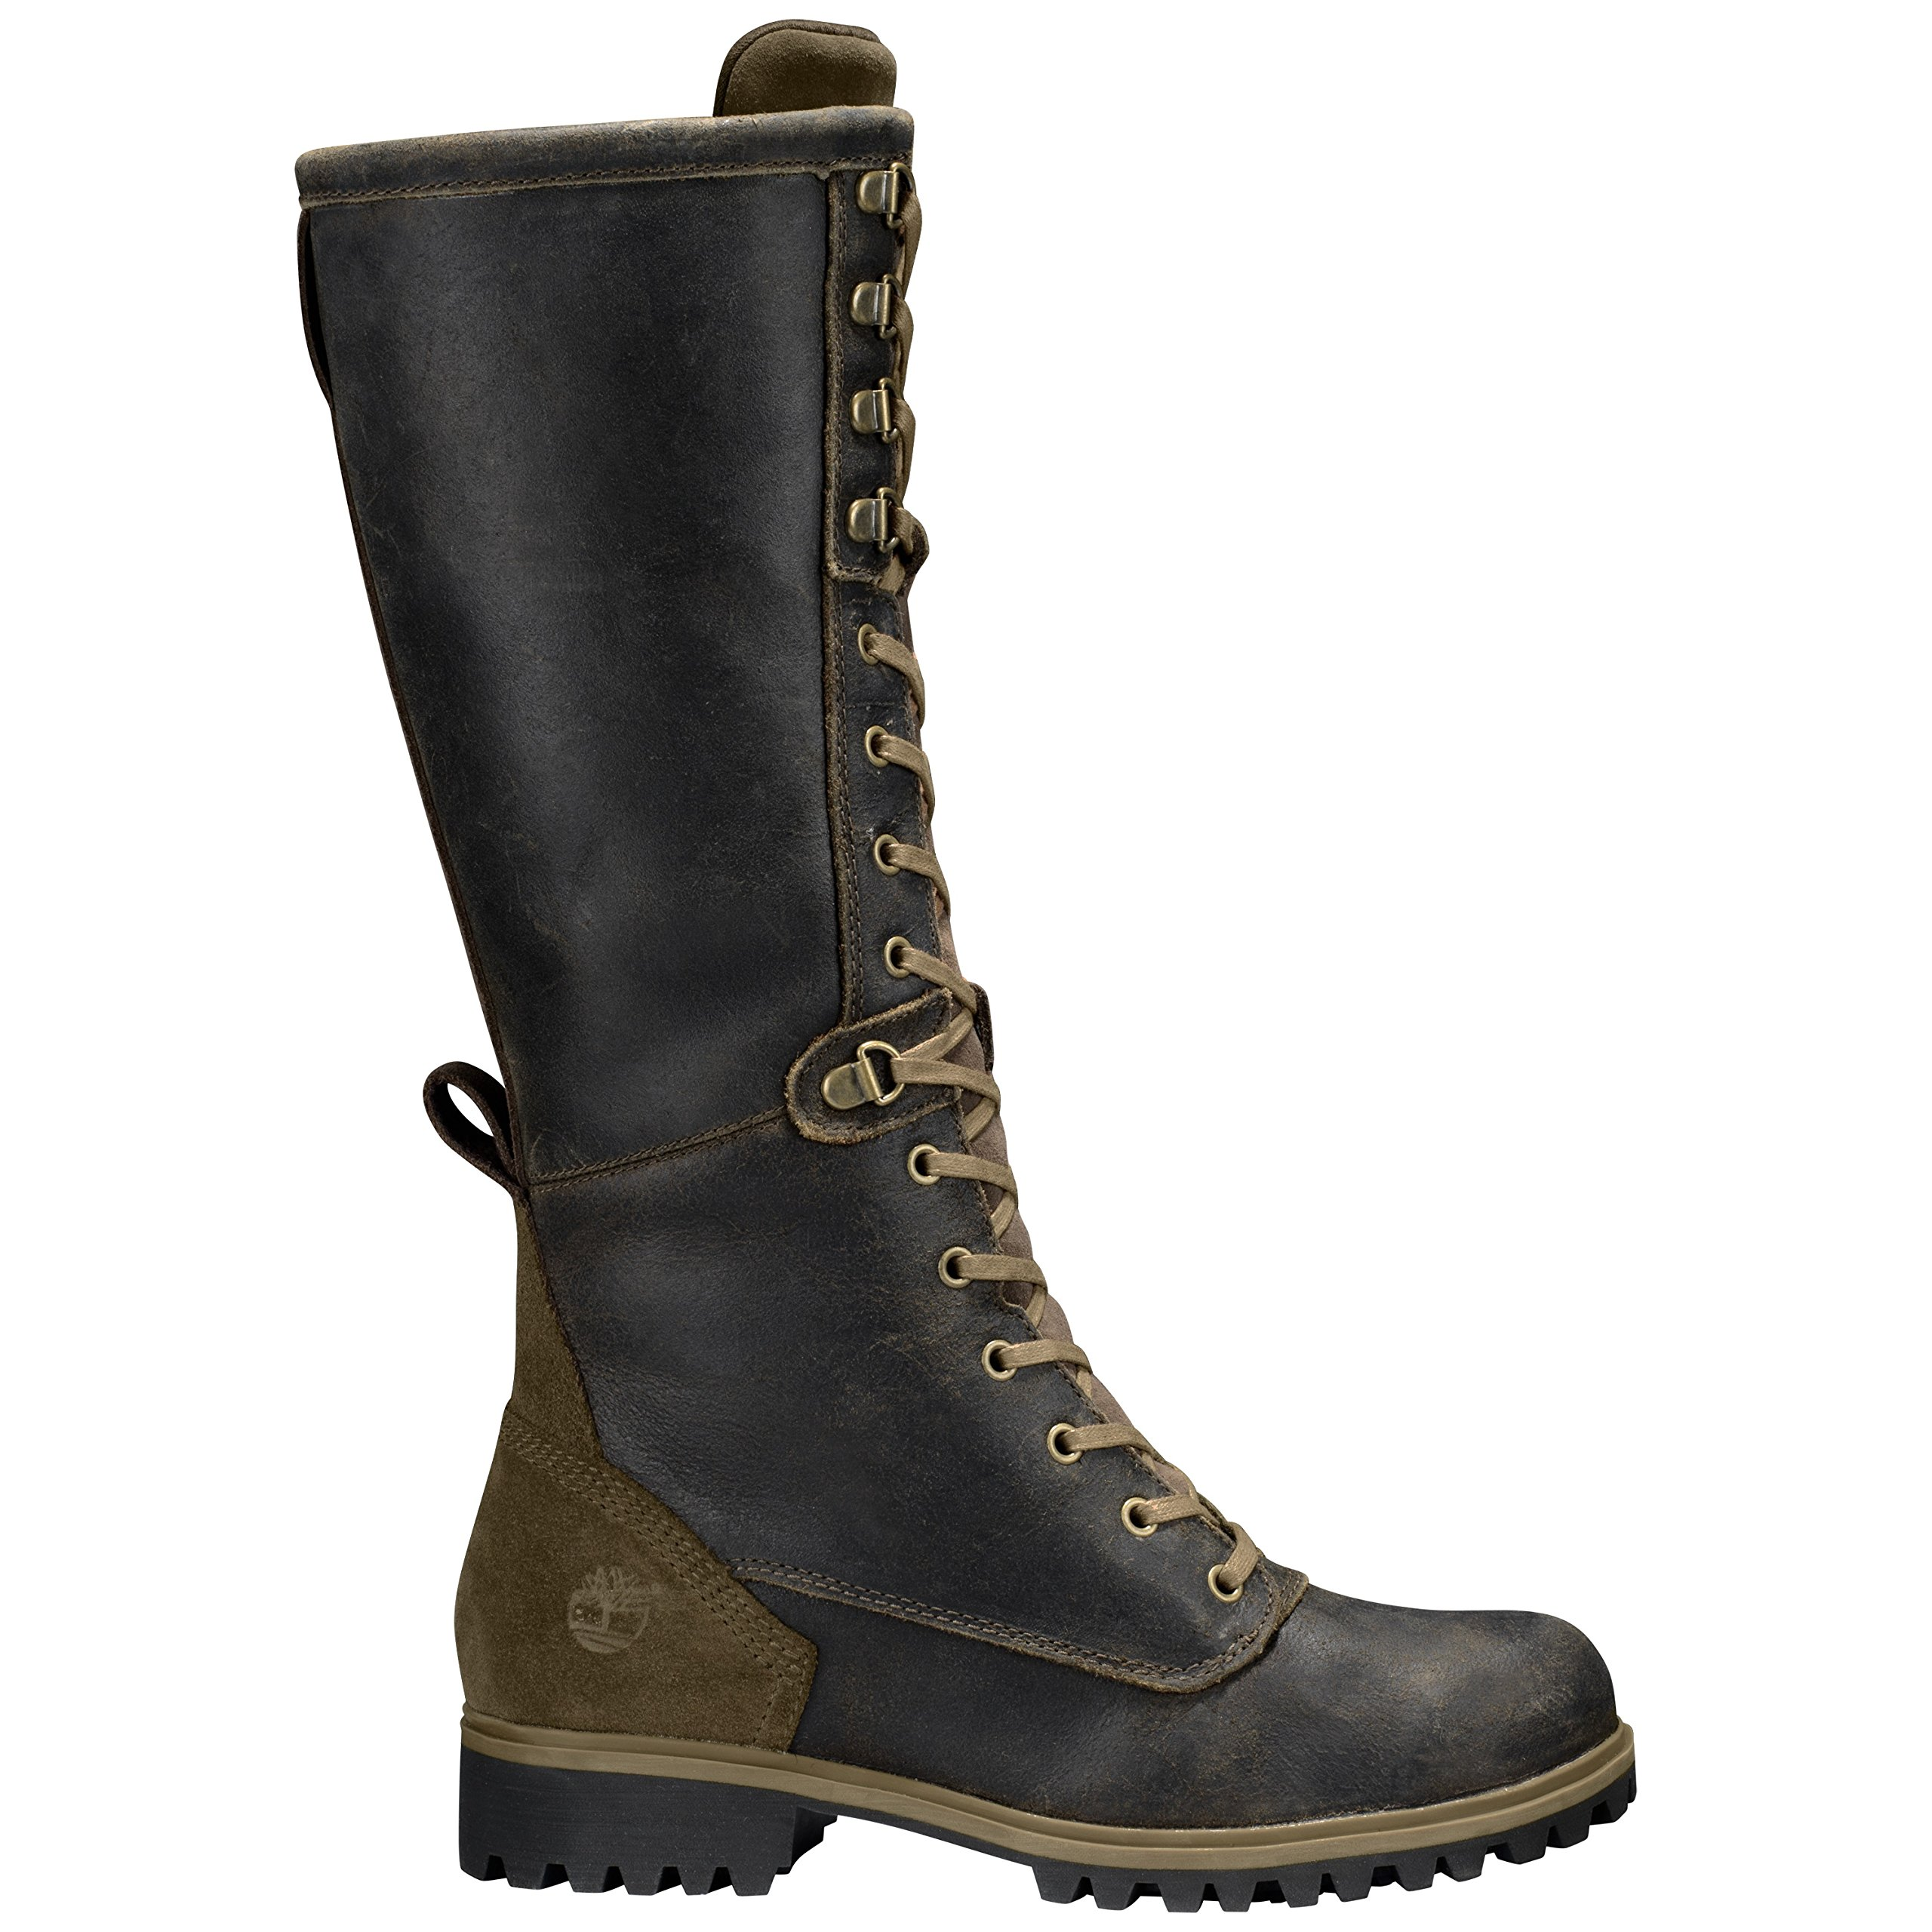 Timberland Women's Wheelwright Tall Lace Waterproof Boot 9 US M Dark Brown Suede by Timberland (Image #4)